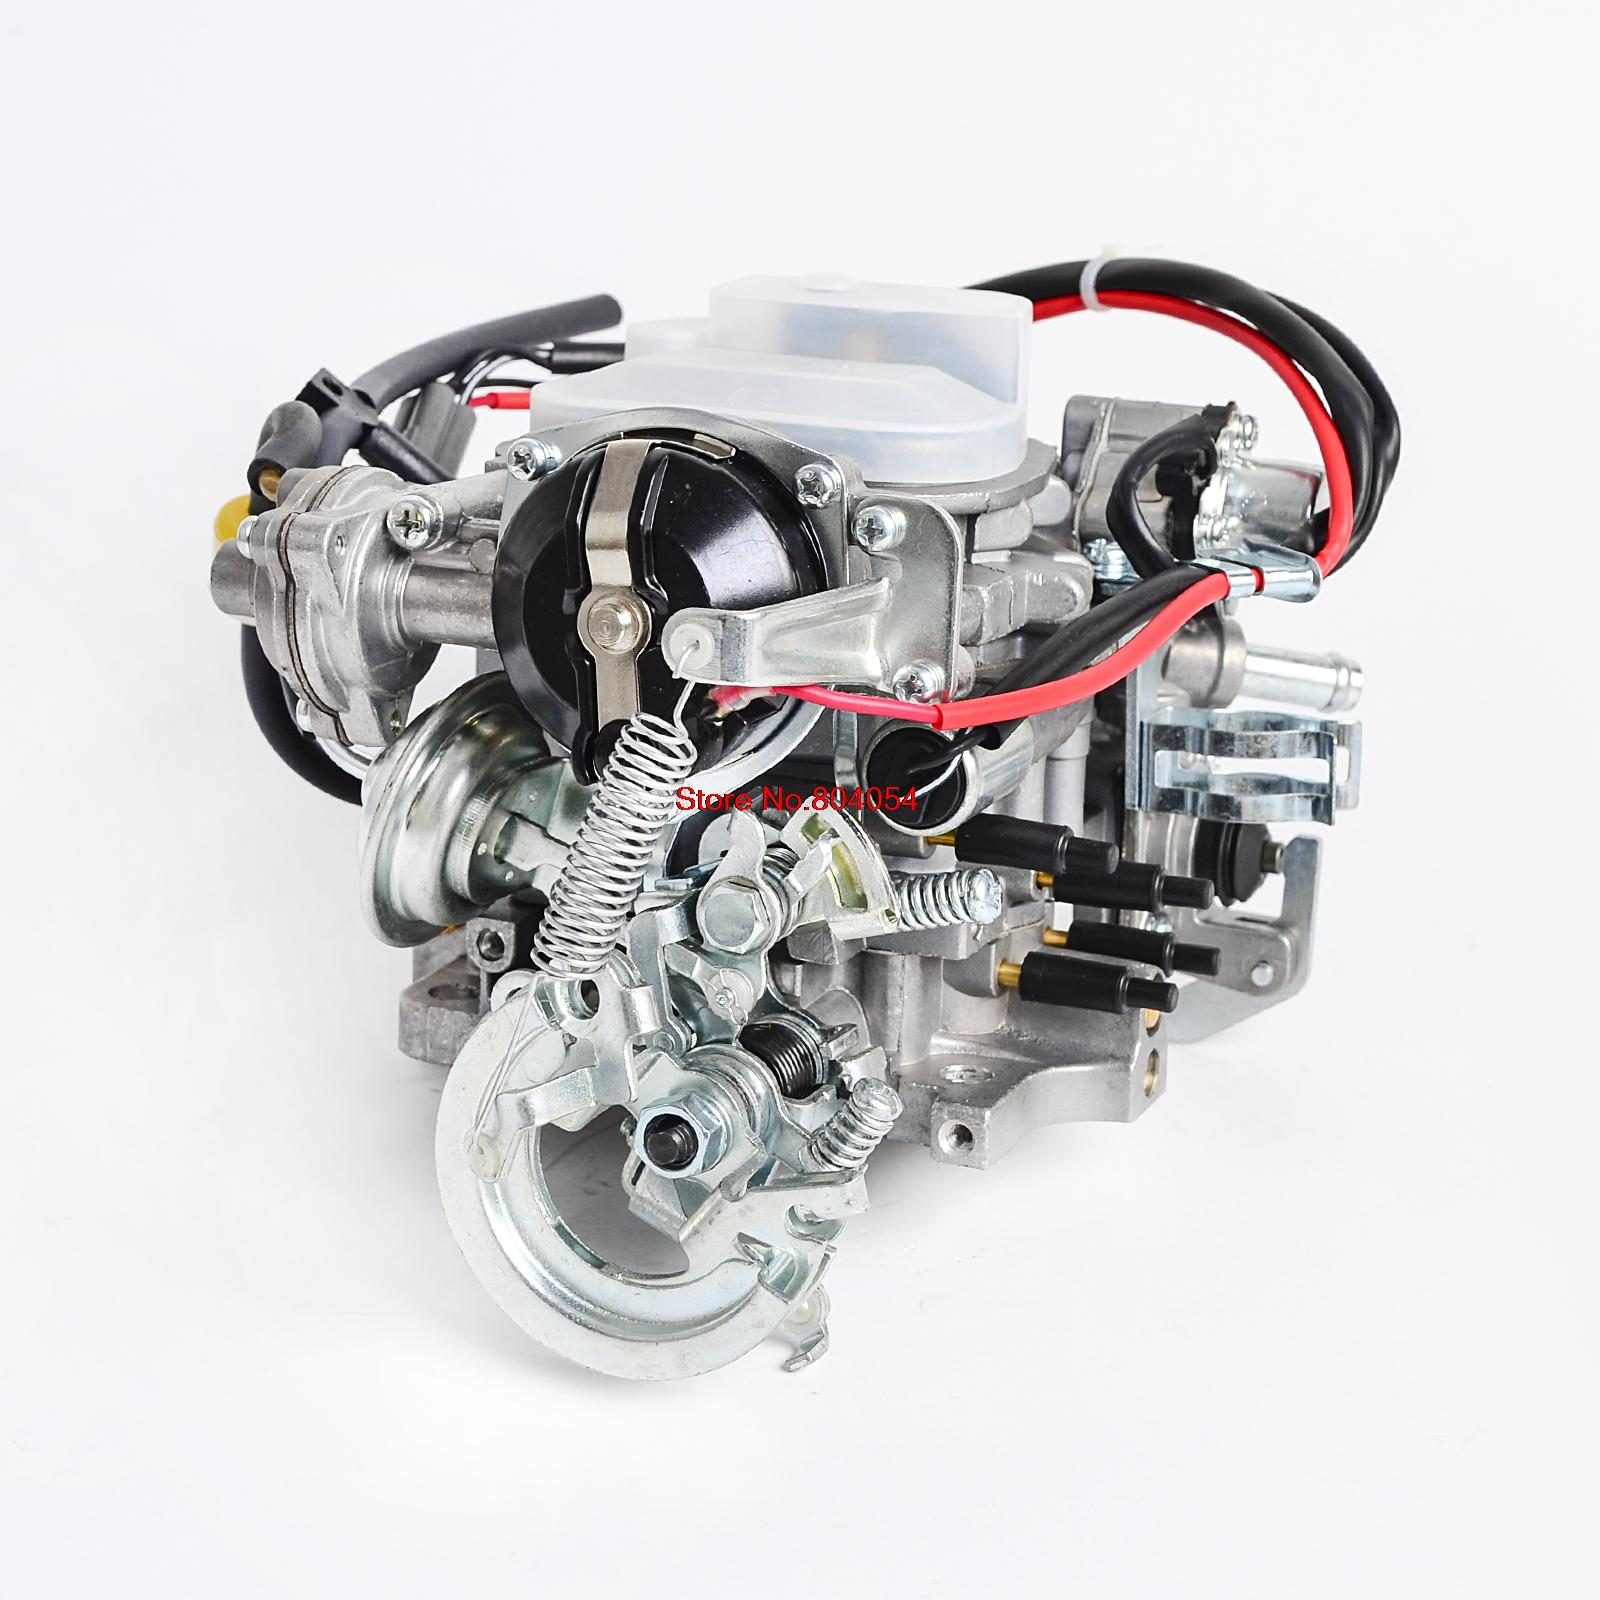 New High Quality CARBIE CARB Carby Carburetor for TOYOTA 4 RUNNER HILUX 22R Engine Part Number: 21100-35530 21100-35520<br><br>Aliexpress